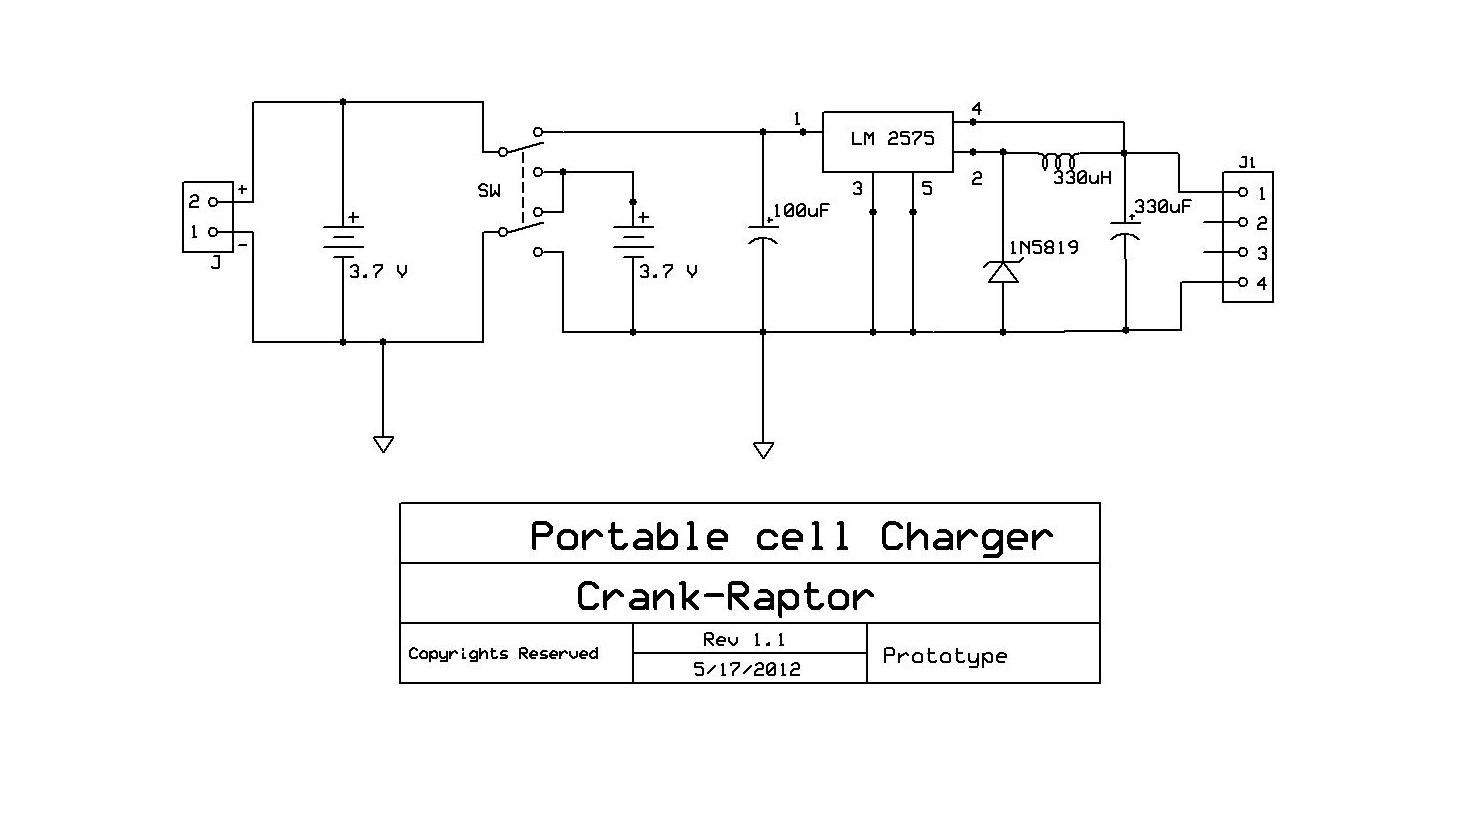 Electronics Circuits Portable Cell Charger Circuit Parallel With Switch A There It Uses Two Li Ion Battery The Input Is From Phone Pin Used To Toggle Between Series And Connection Of Batteries